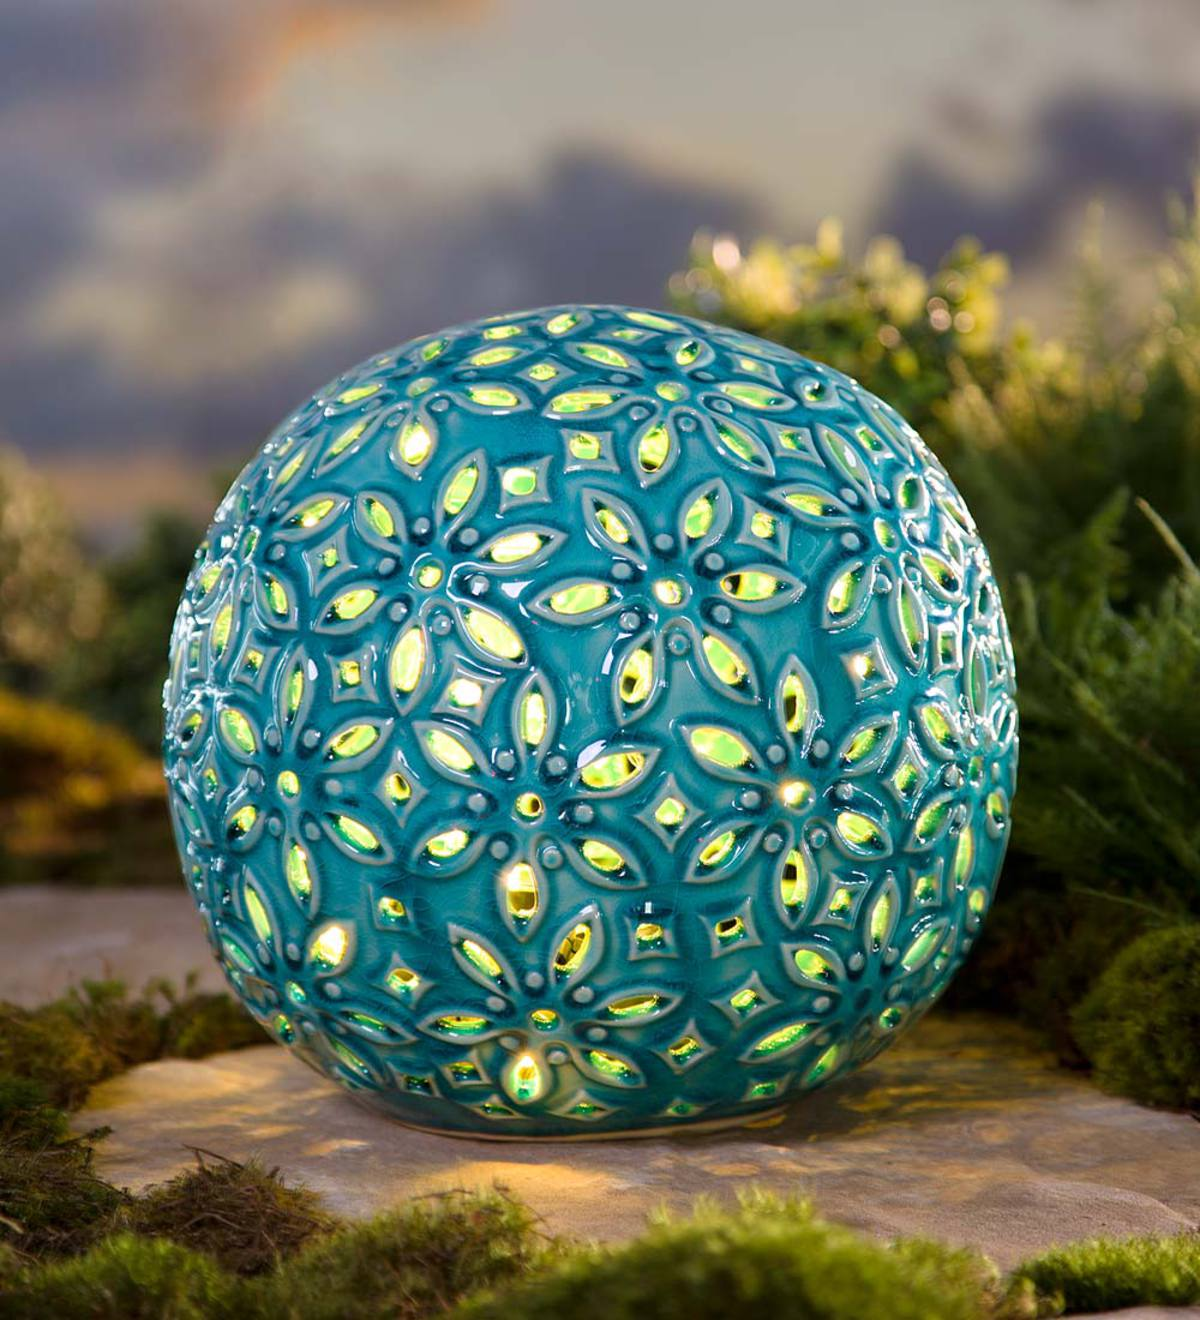 Lighted Ceramic Flower Globe - Blue